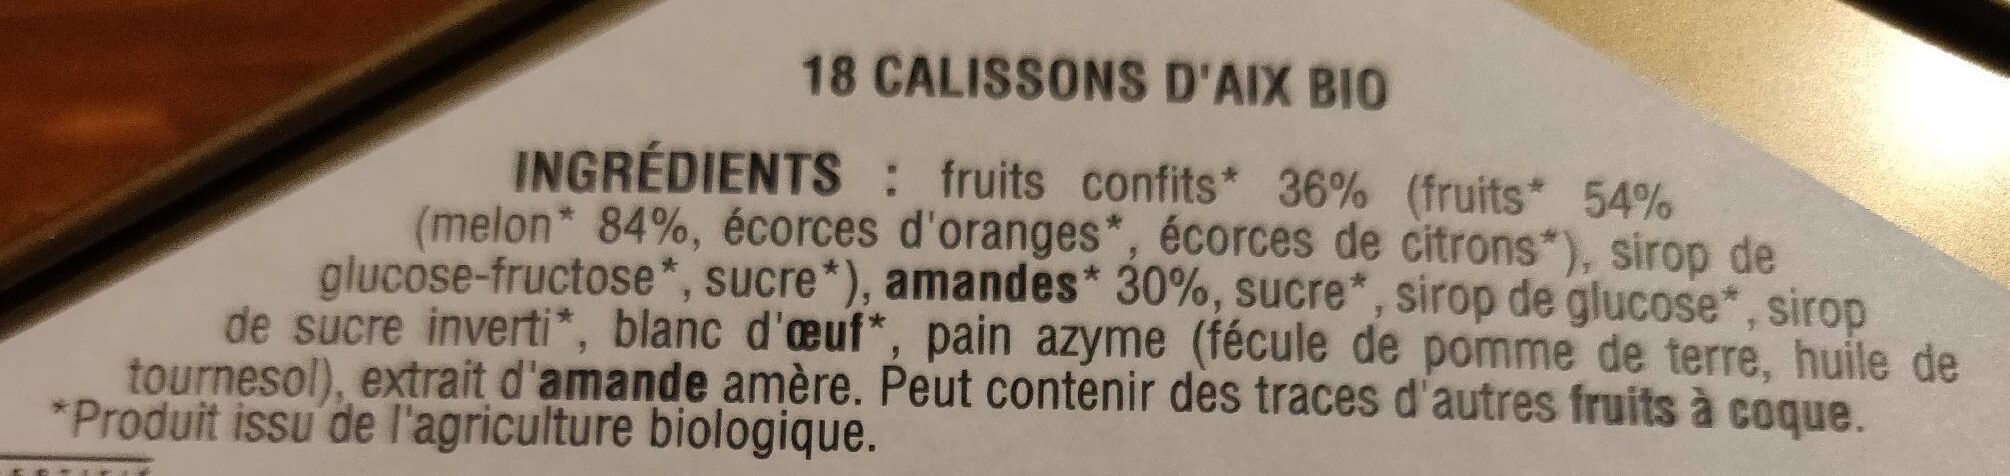 Calissons D'Aix bio - Ingredients